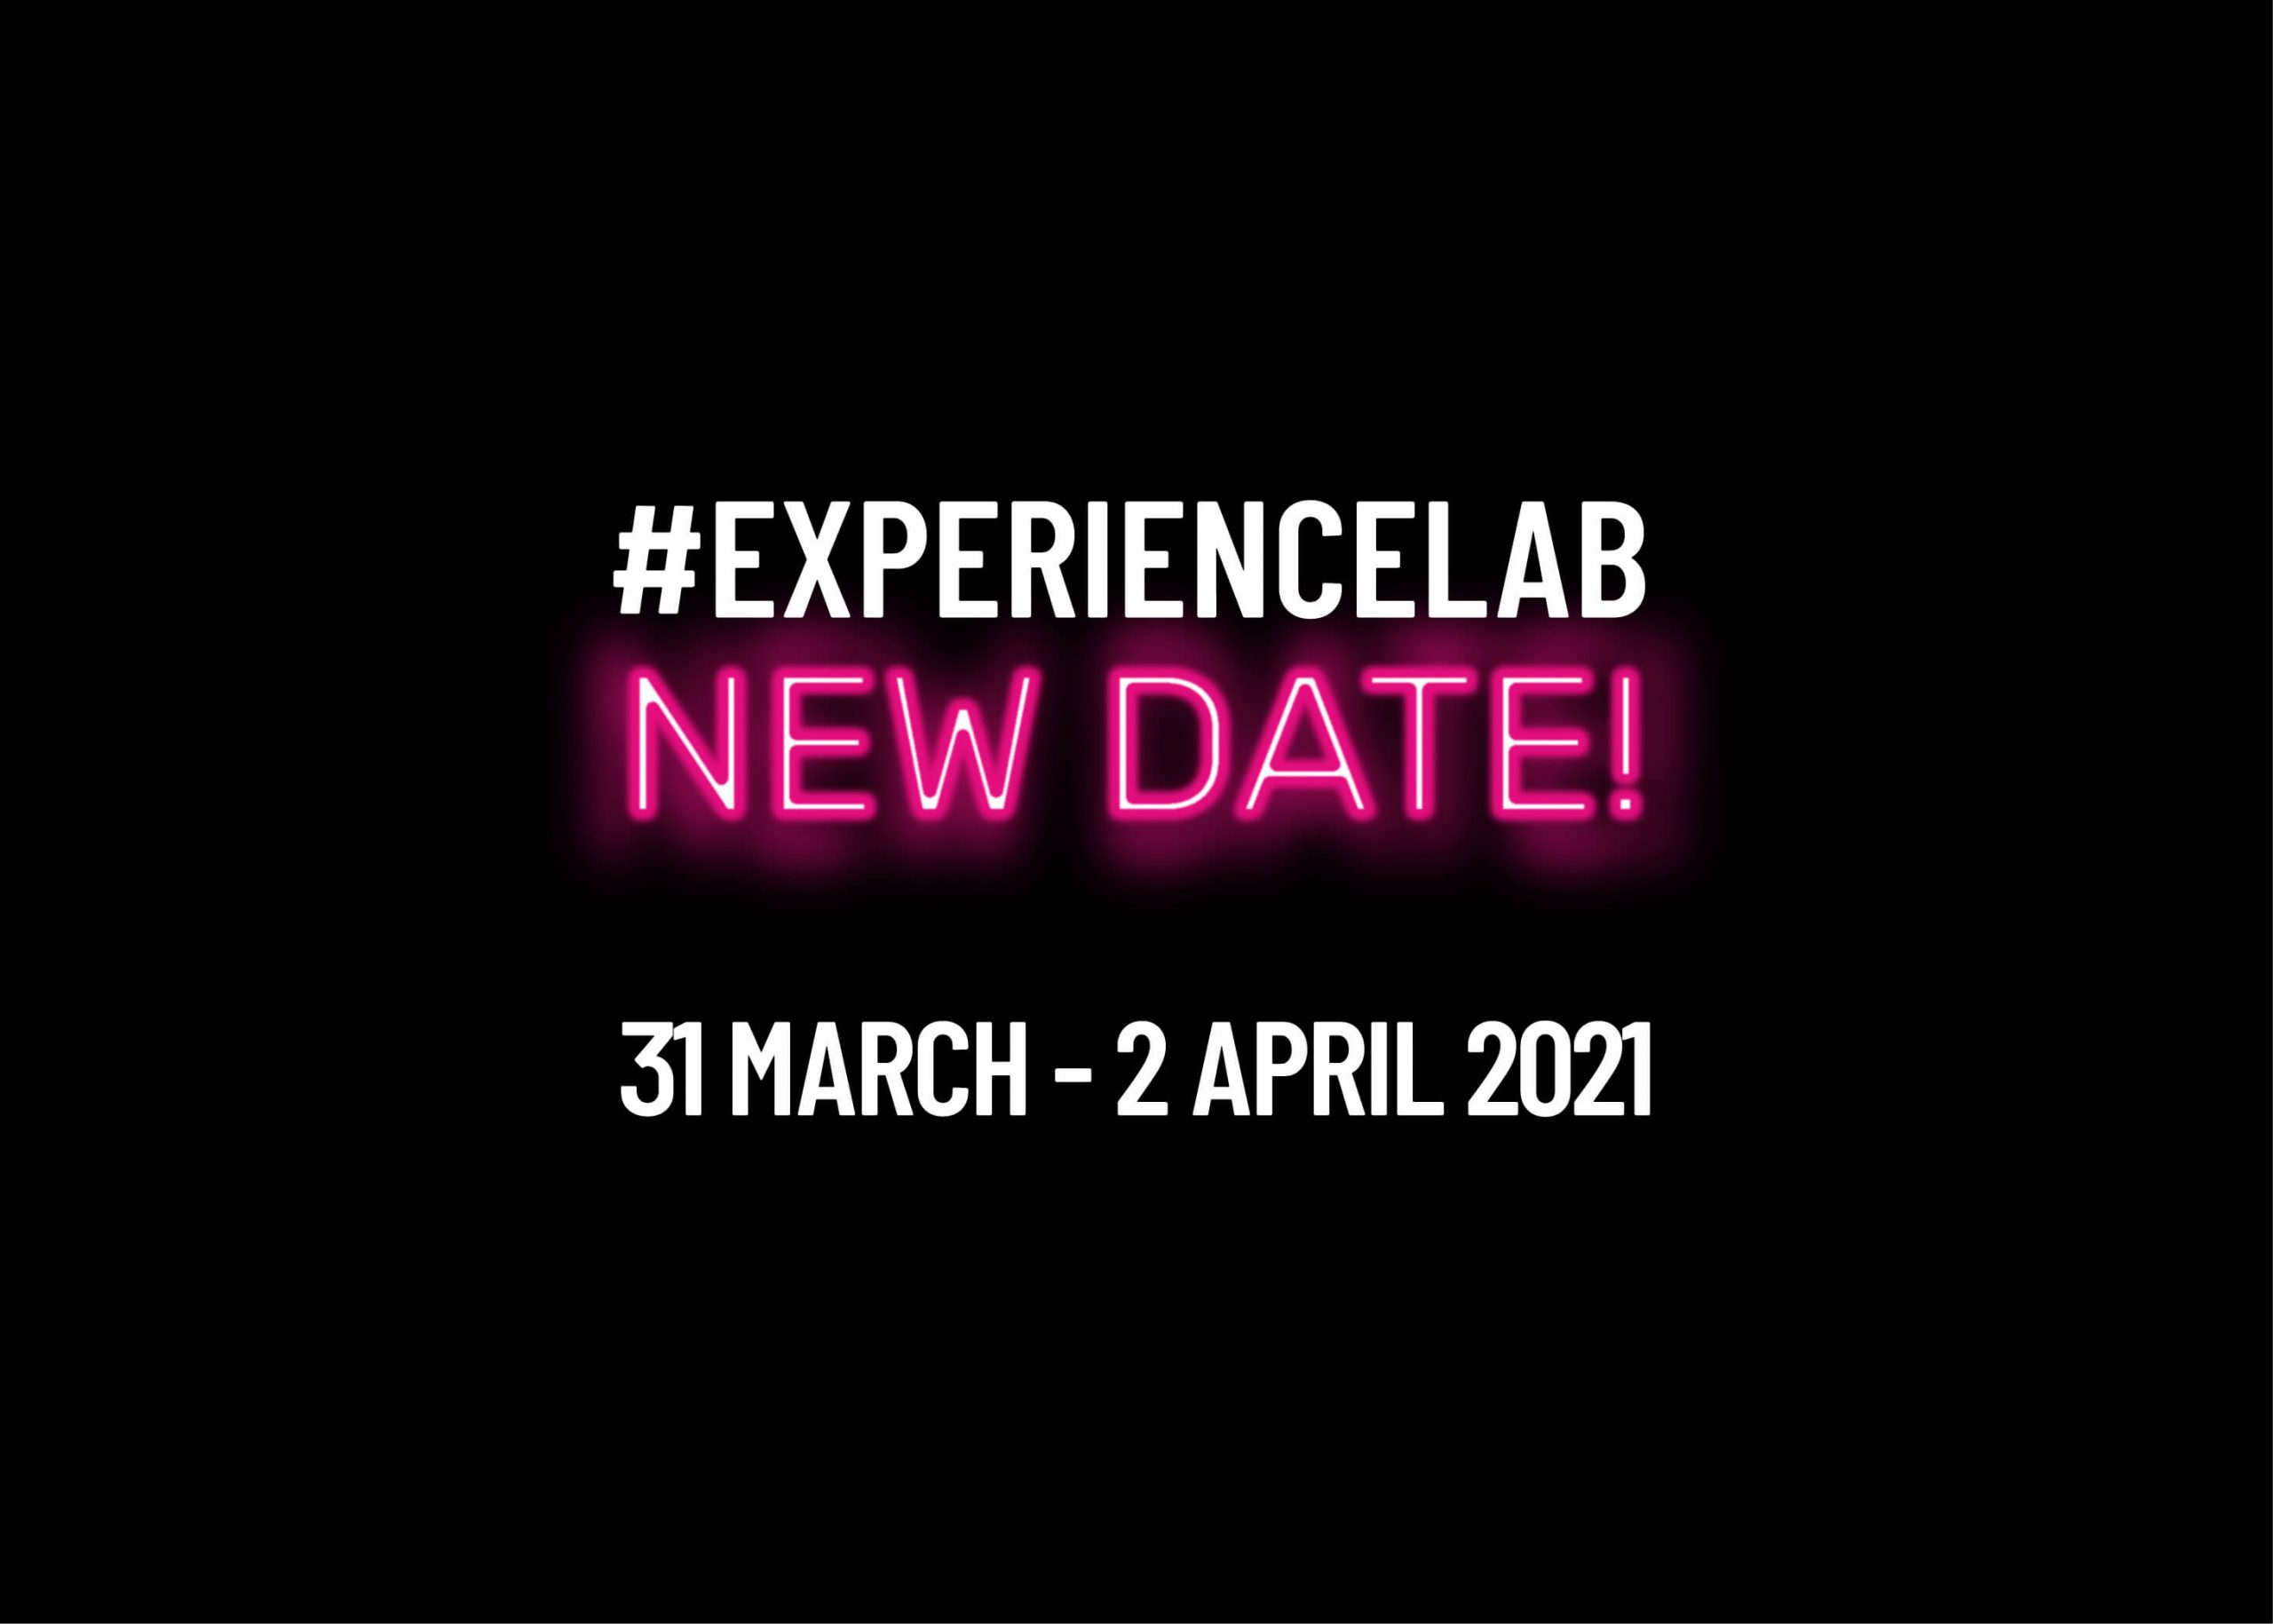 Experience Lab: the second edition is set to take place from March 31st to April 2nd 2021